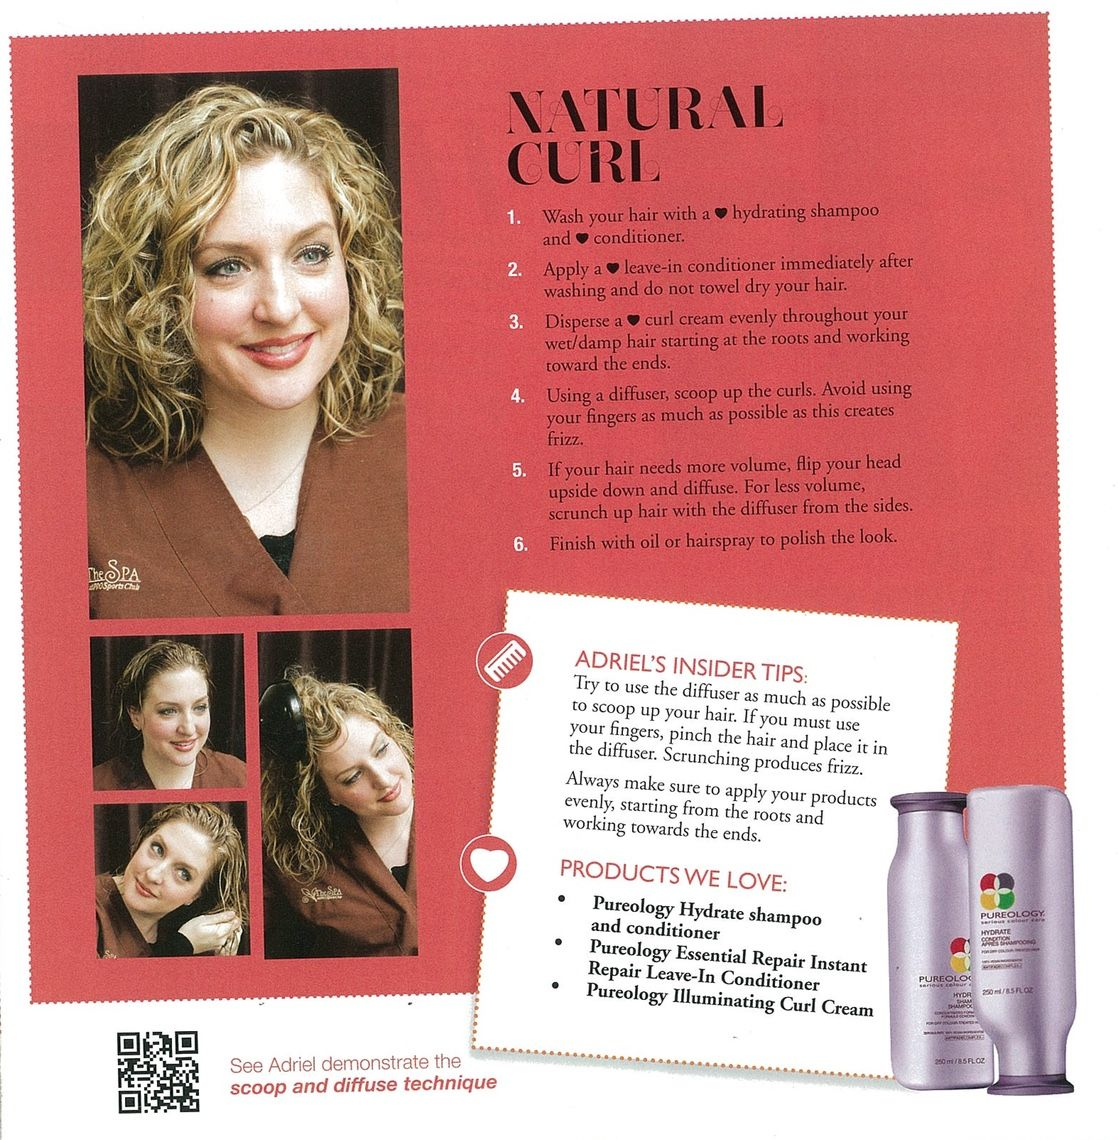 HowTo Hair Styling Guide Natural Curl PRO Sports Club